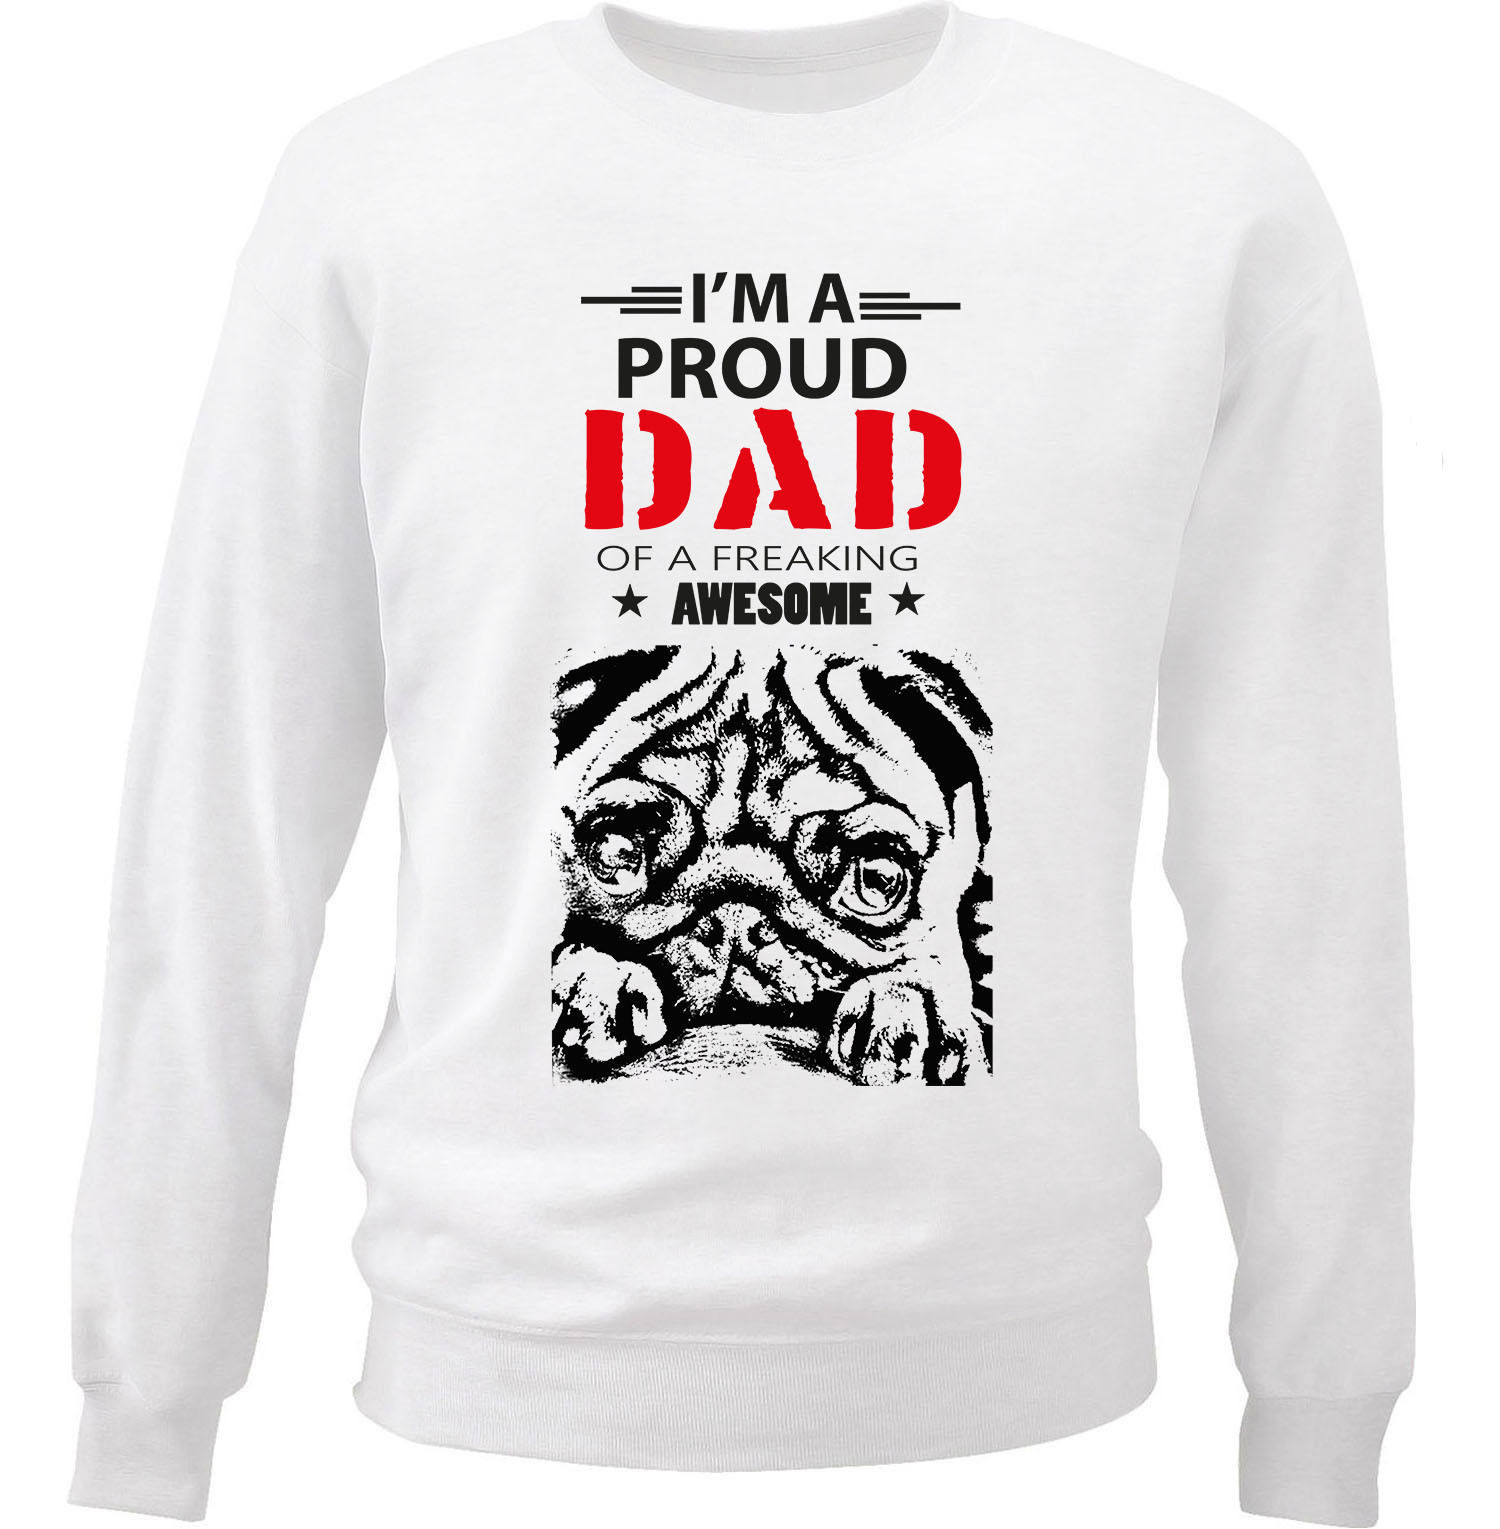 PUG 1 - IM A PROUD DAD - NEW WHITE COTTON SWEATSHIRT